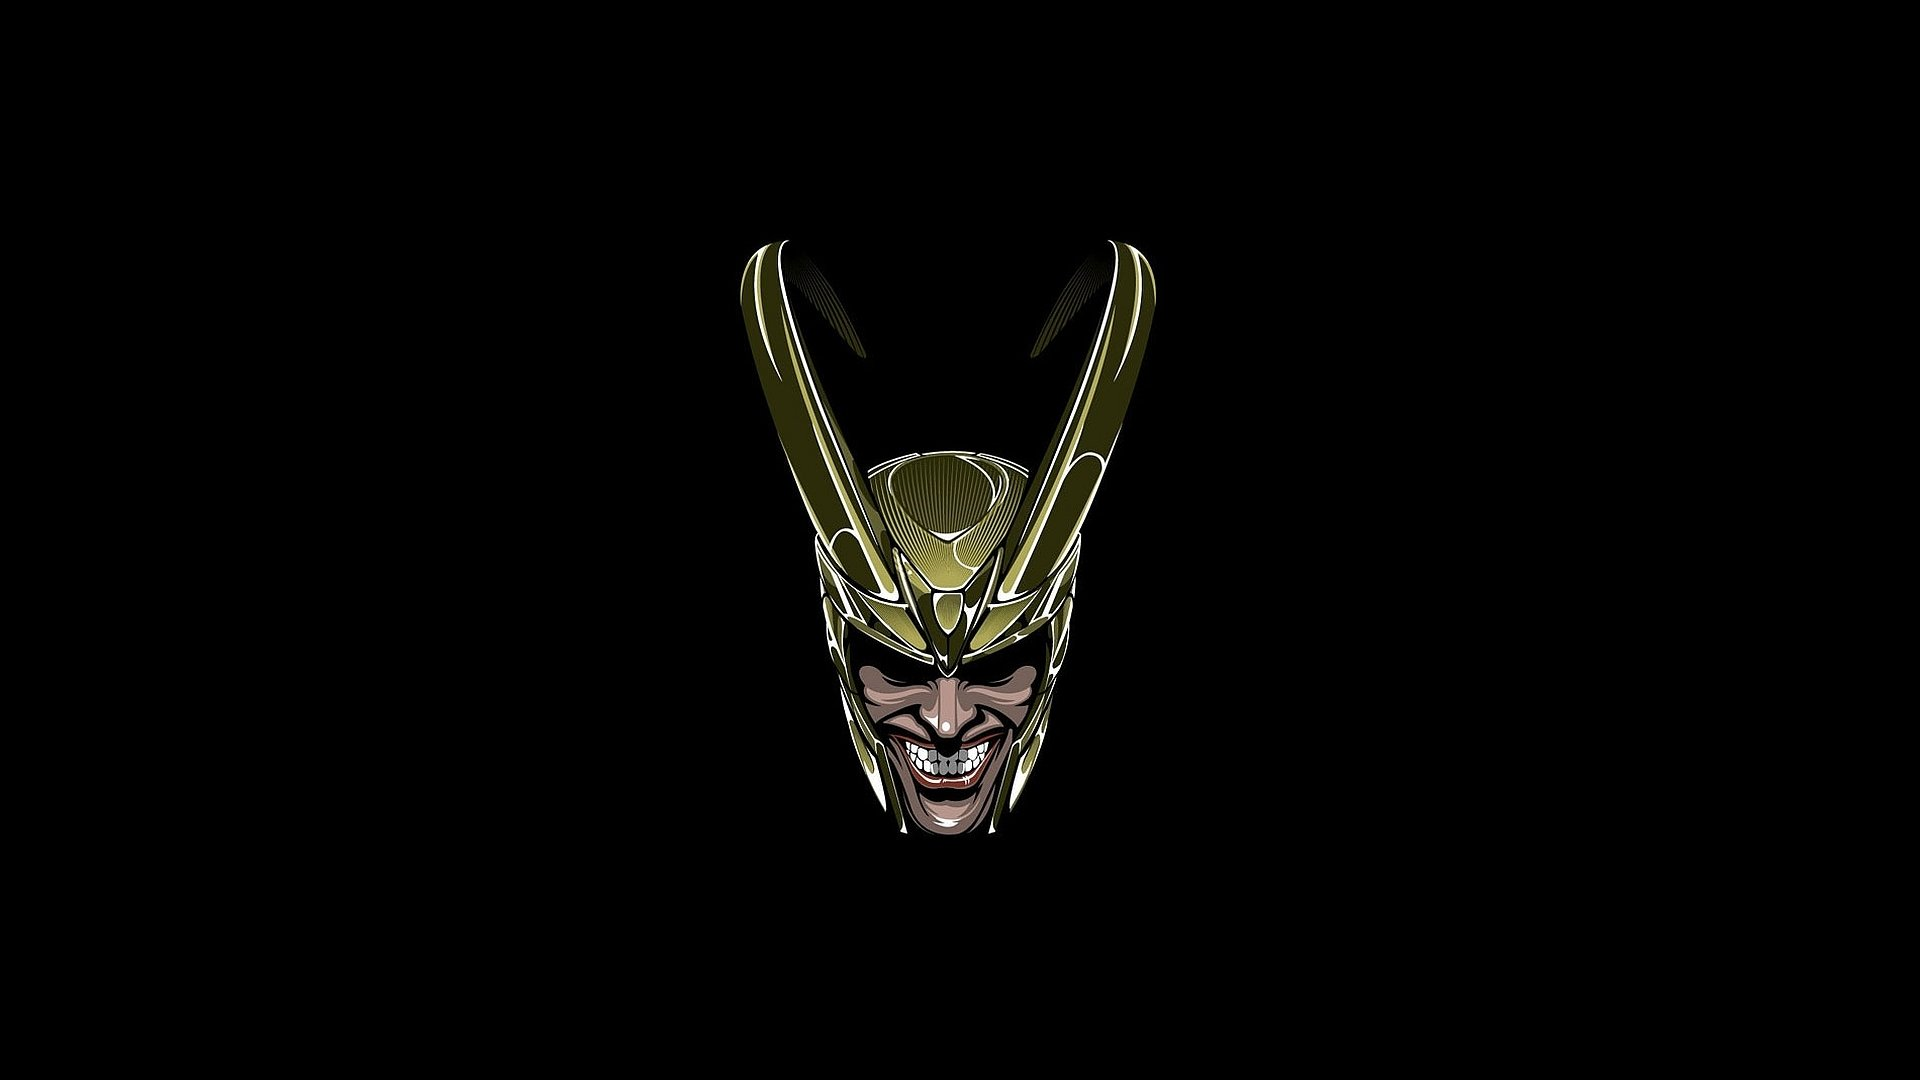 Loki background wallpaper